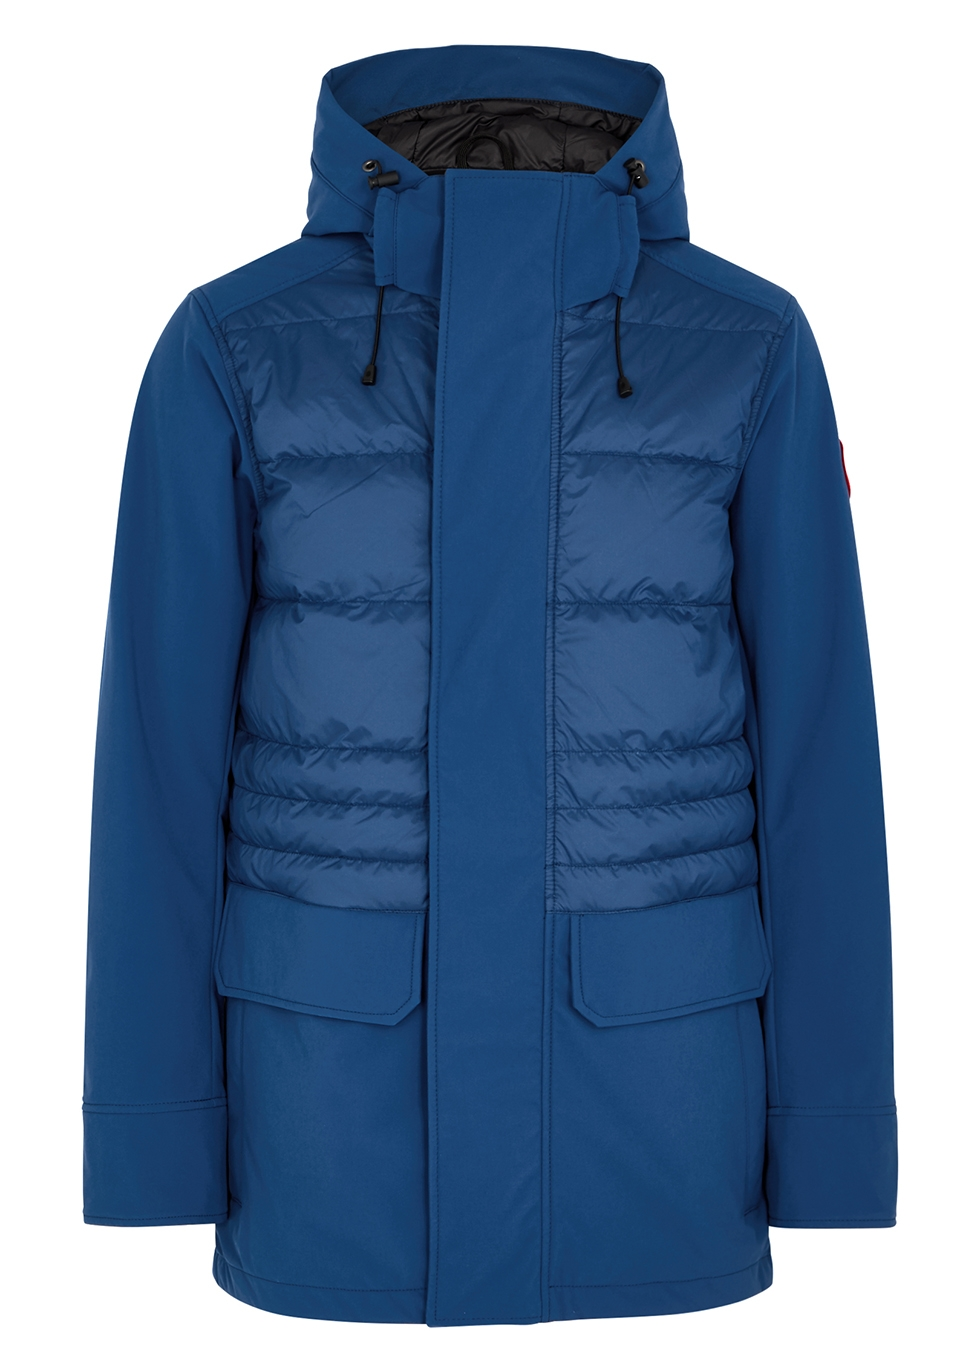 Breton blue quilted Tri-Durance shell jacket